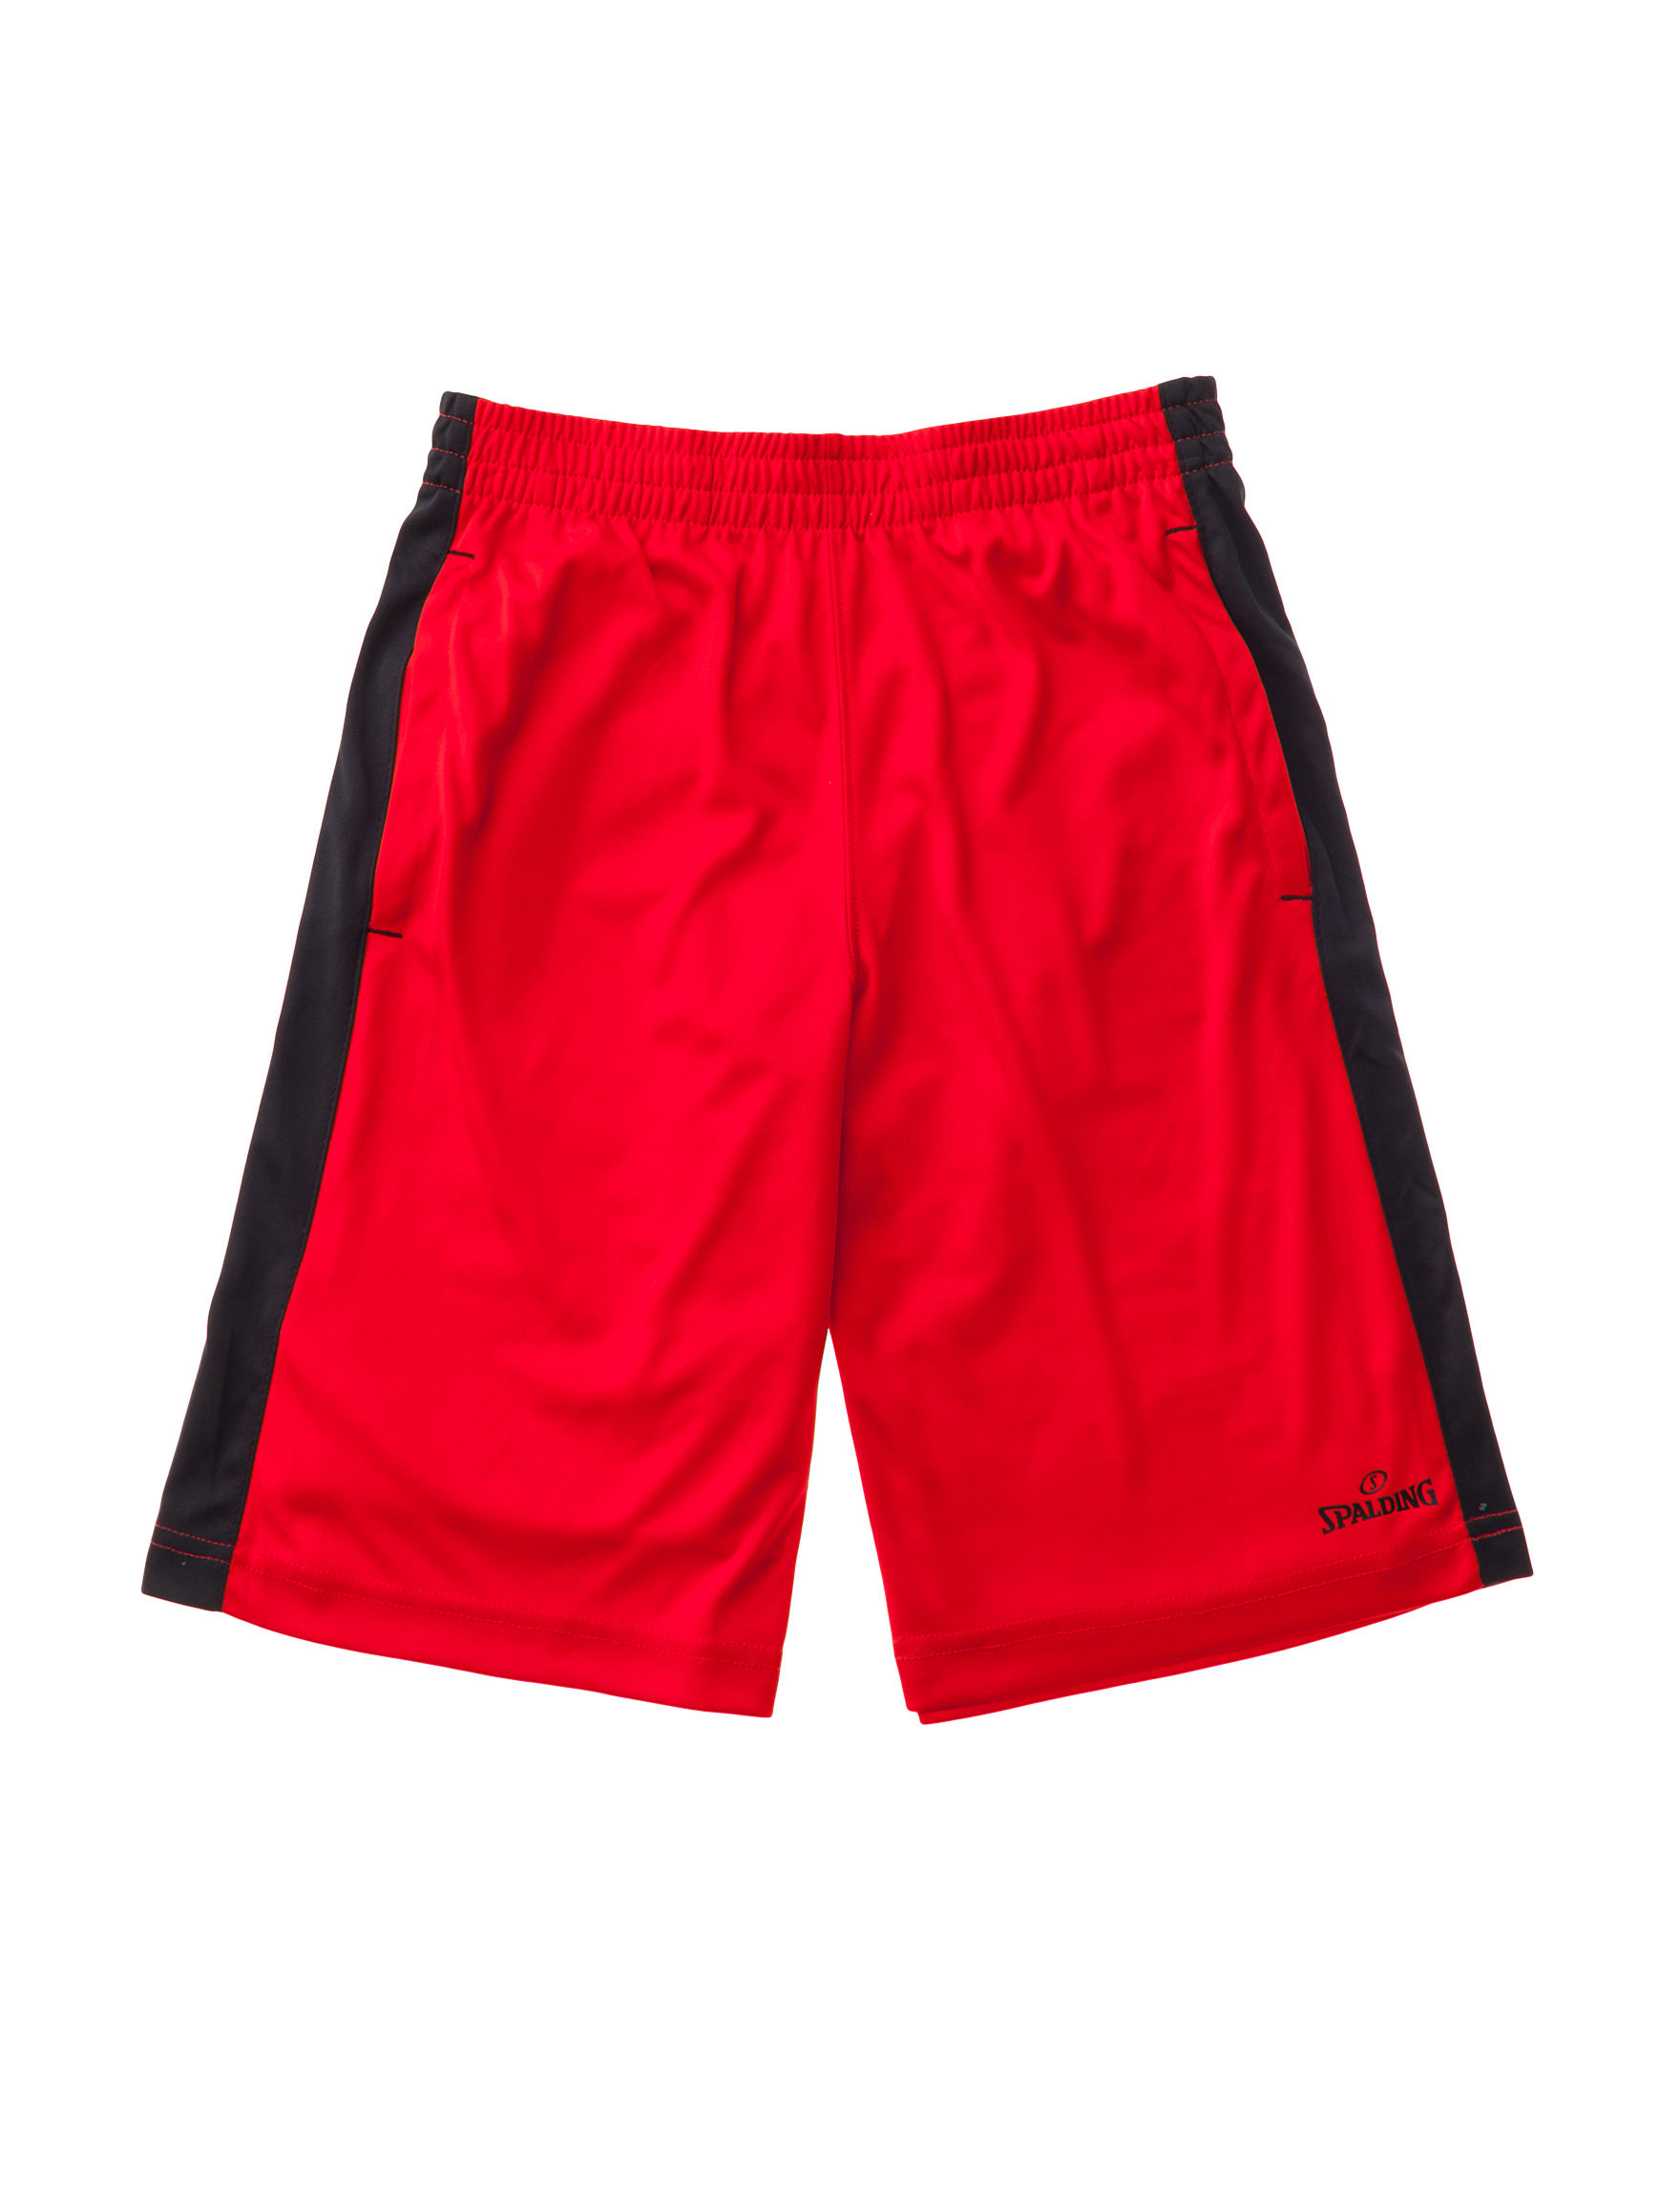 Spalding Red Relaxed